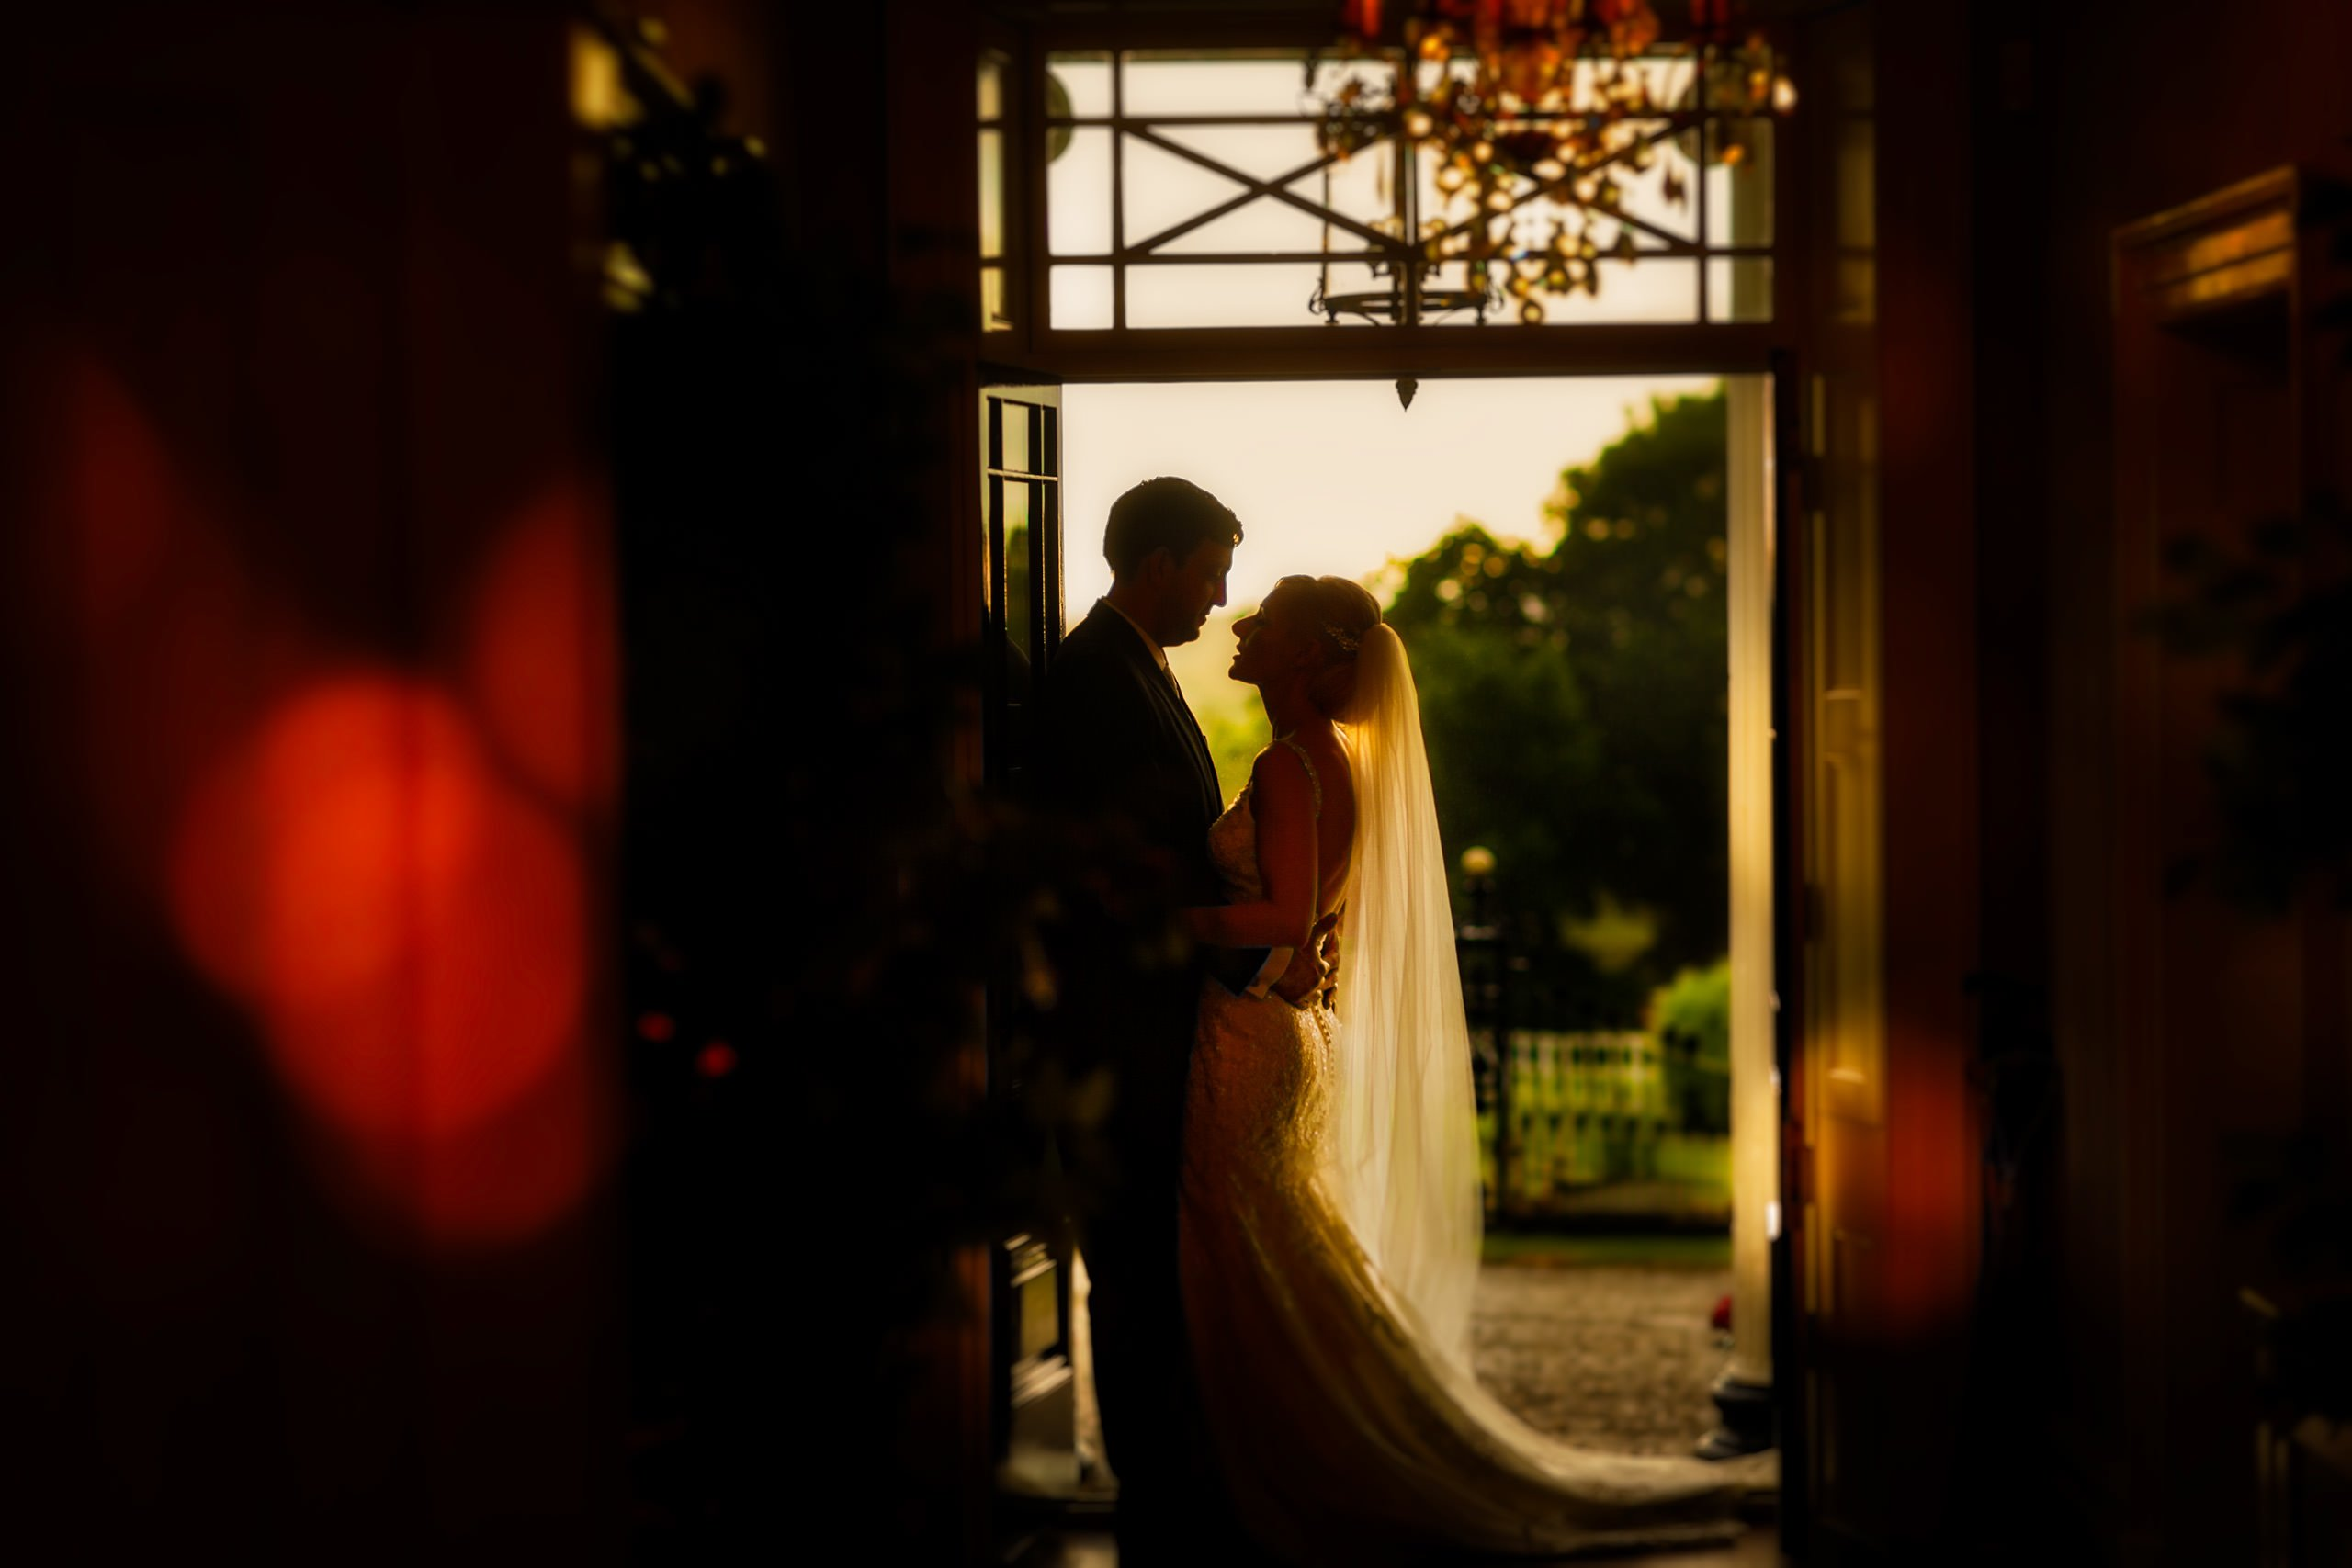 wedding photographer in Shropshire capturing a beautiful moment at Shooters Hill Hall